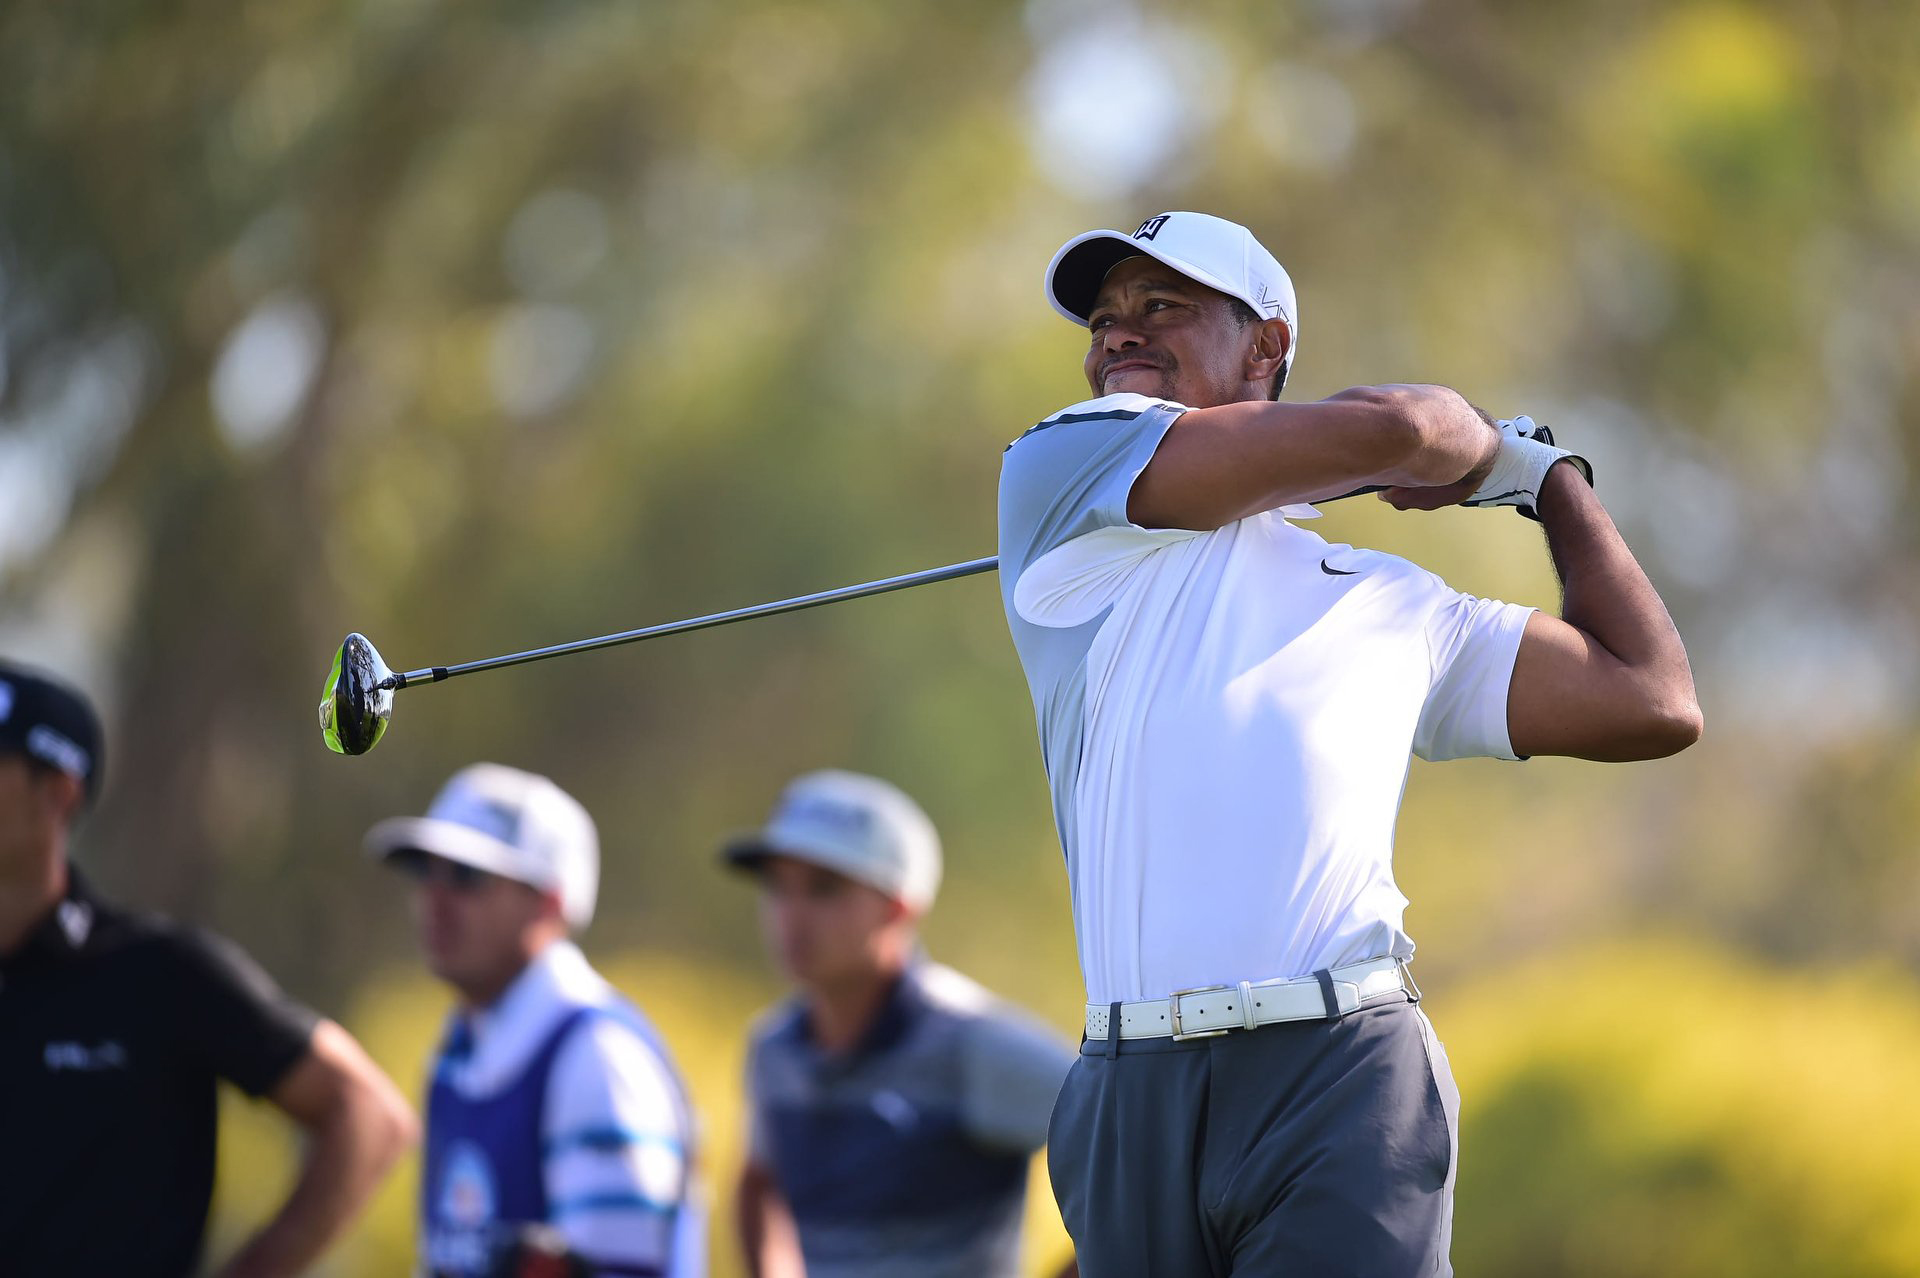 Tiger Woods in the first round of the Famers Insurance Open at Torrey Pines.